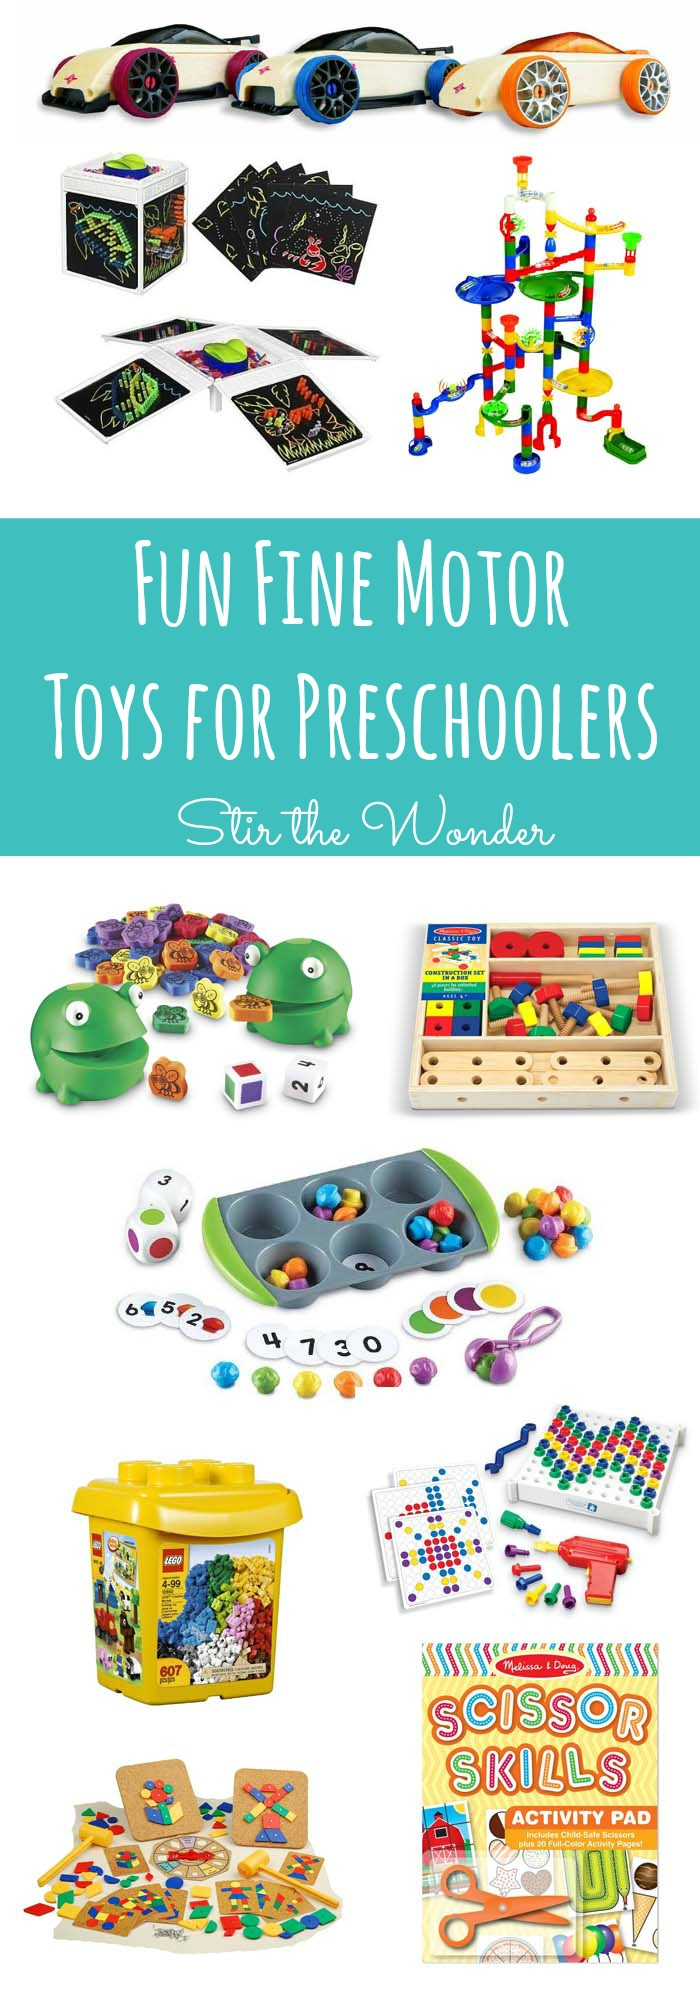 fun fine motor toys for preschoolers stir the wonder